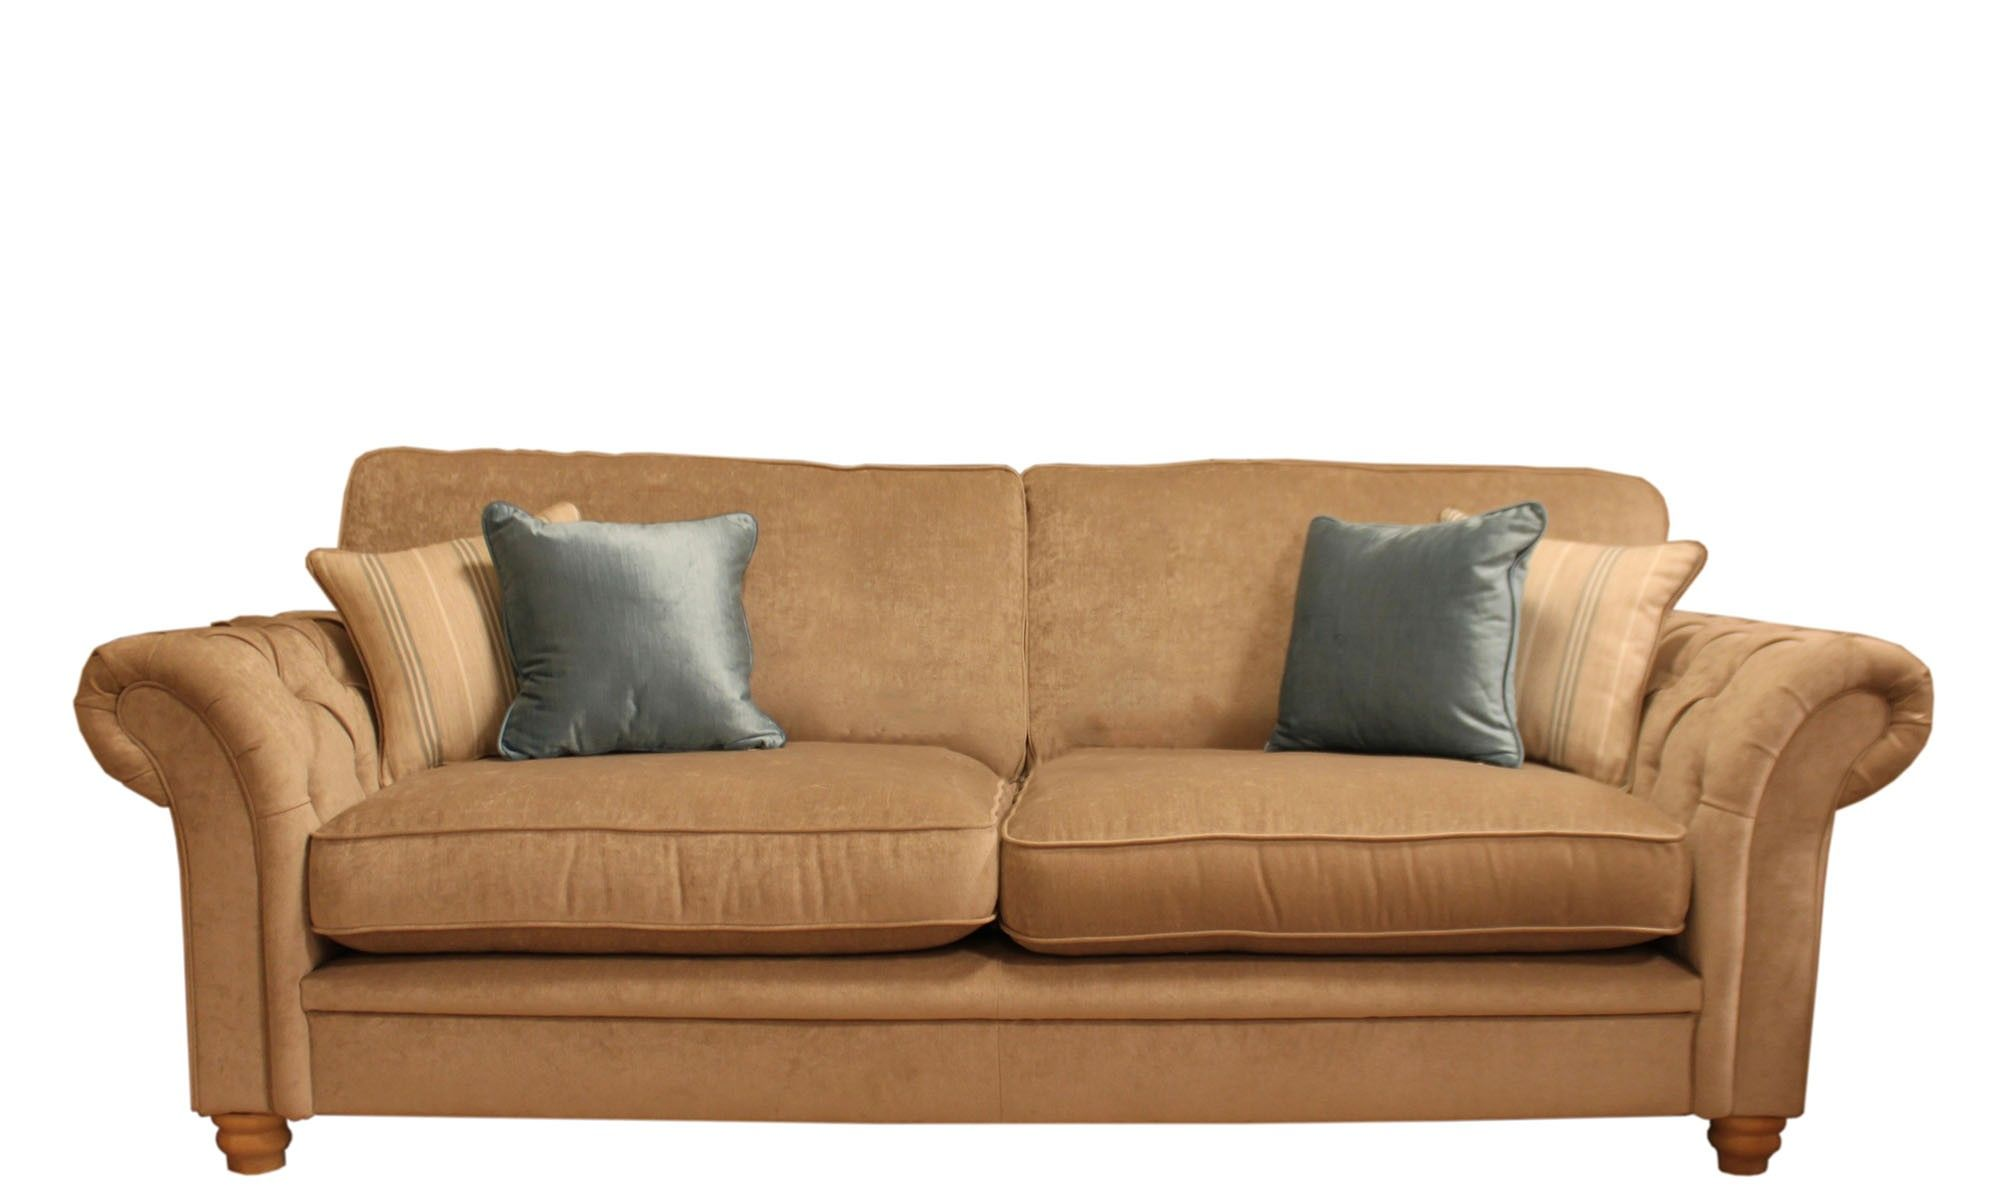 better furniture sofas leather sectional sofa with recliners s in roanoke va